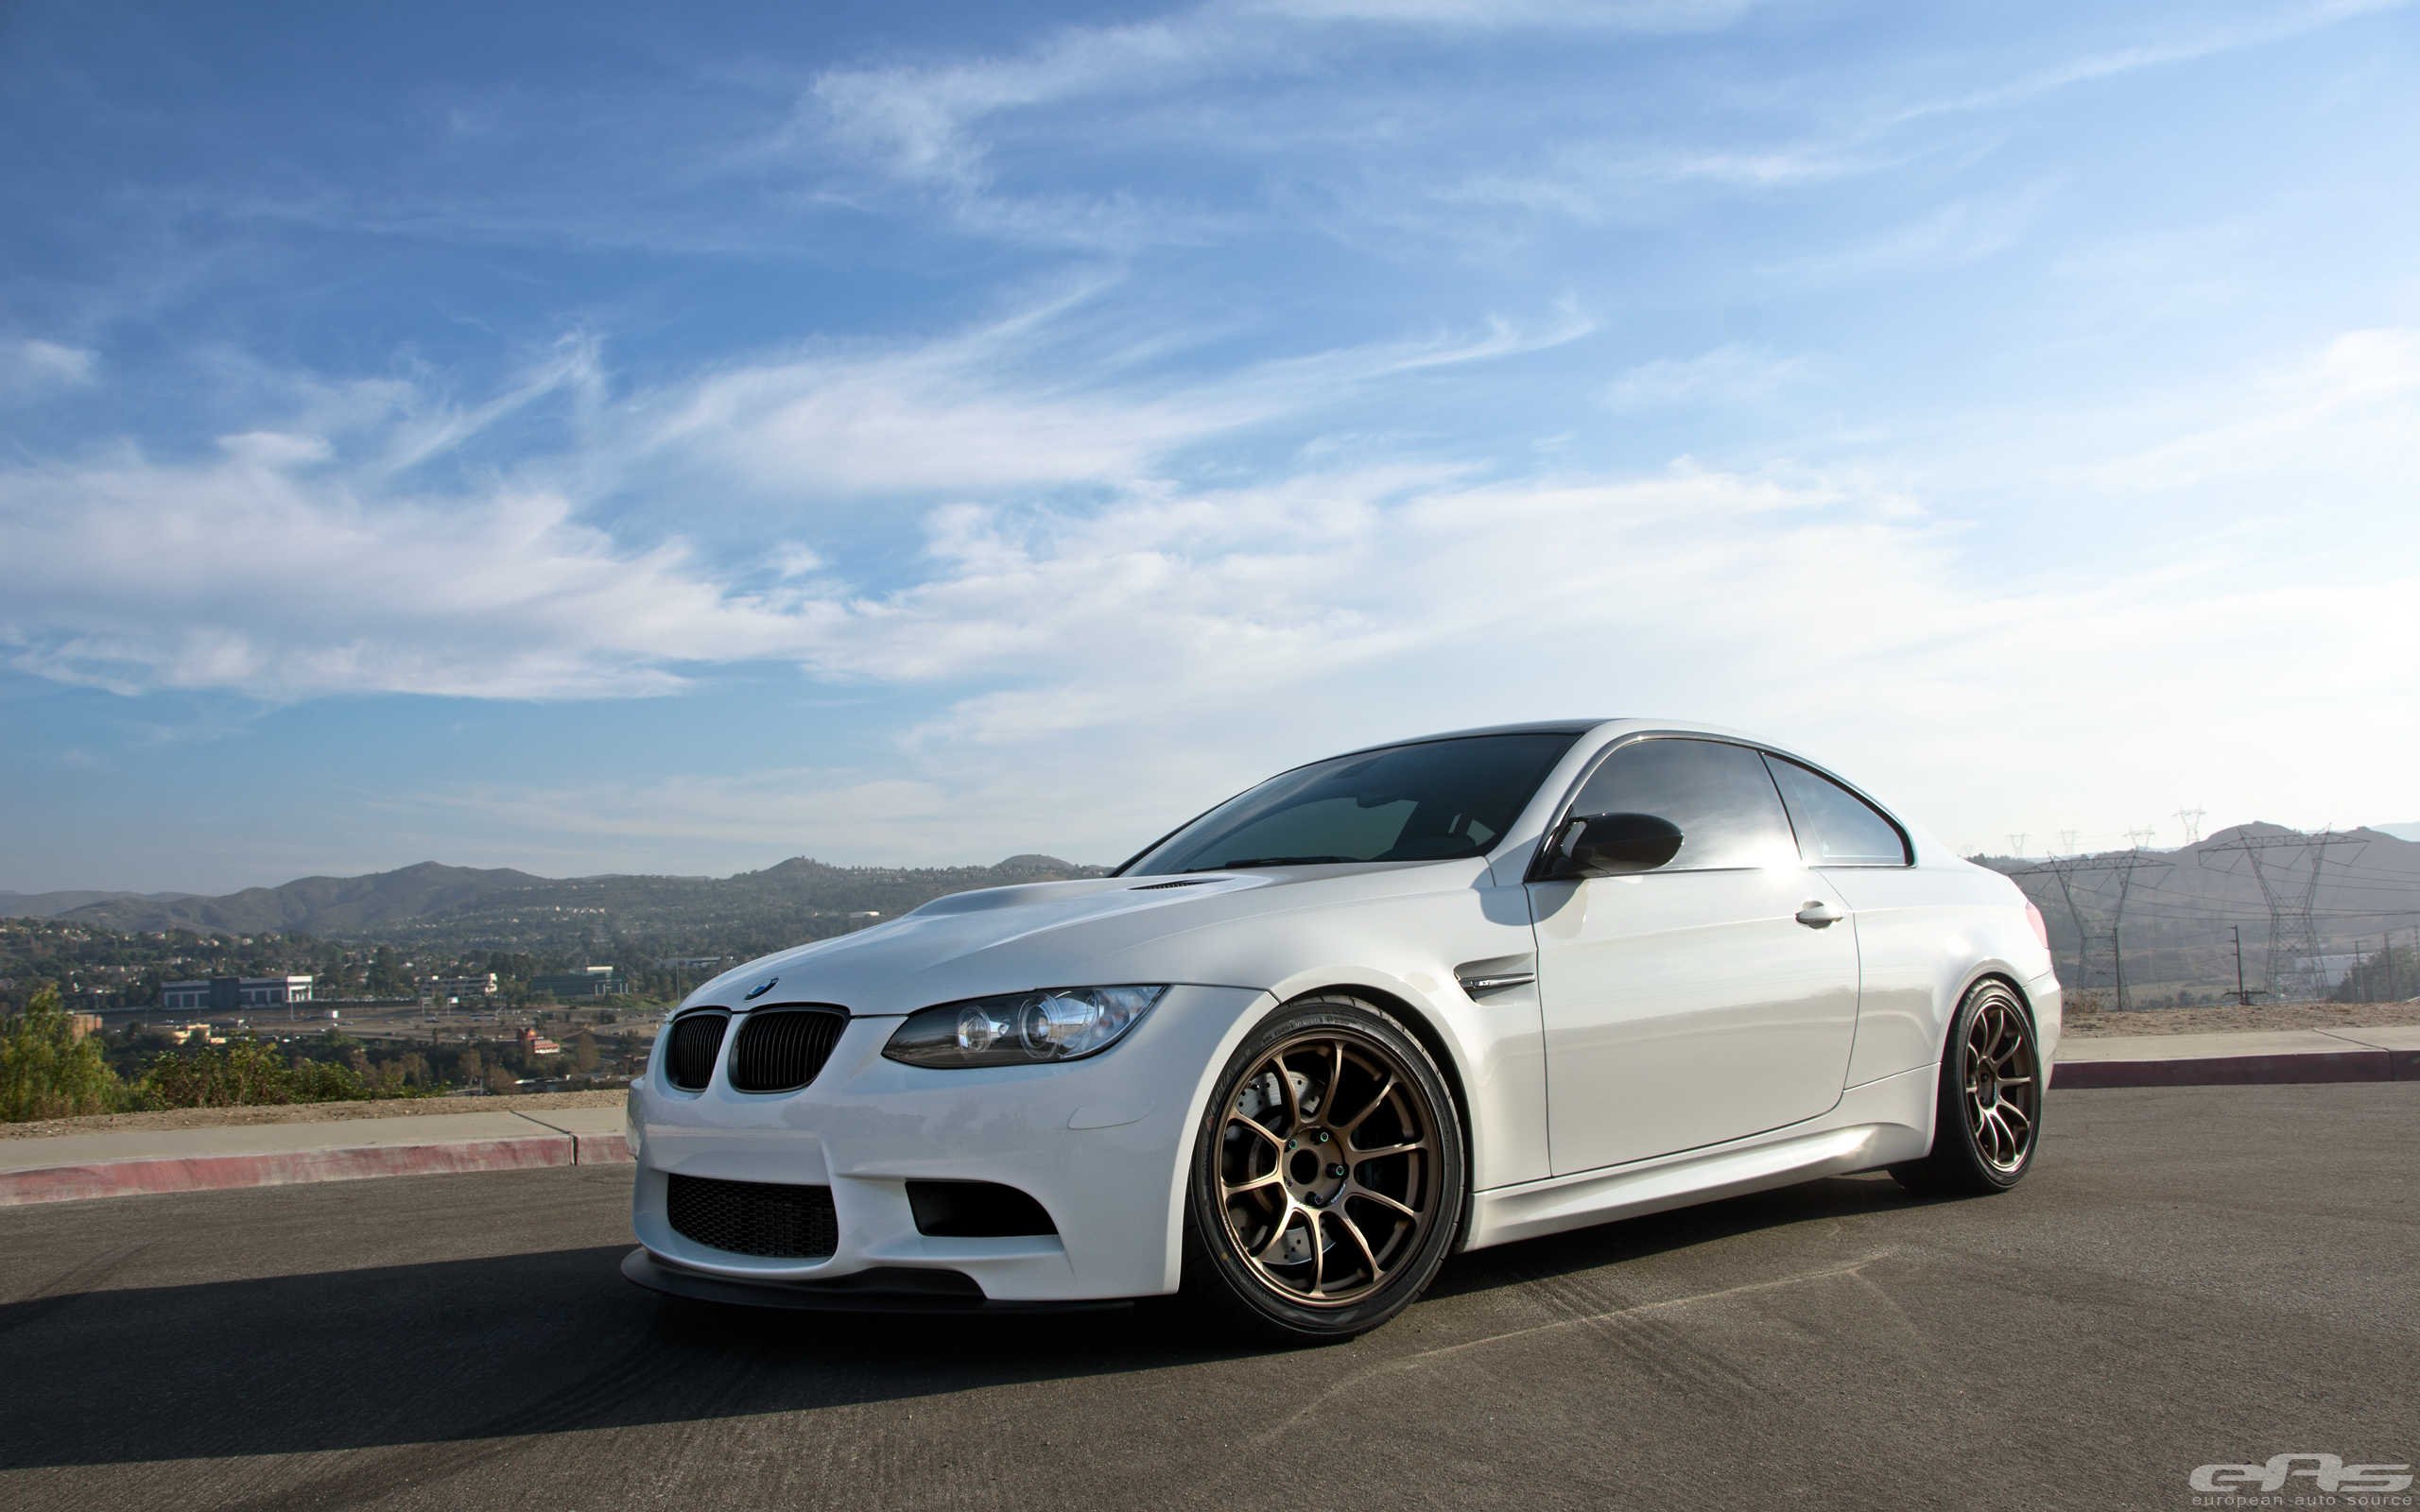 Alpine White Bmw E92 M3 Is Ready For The Track